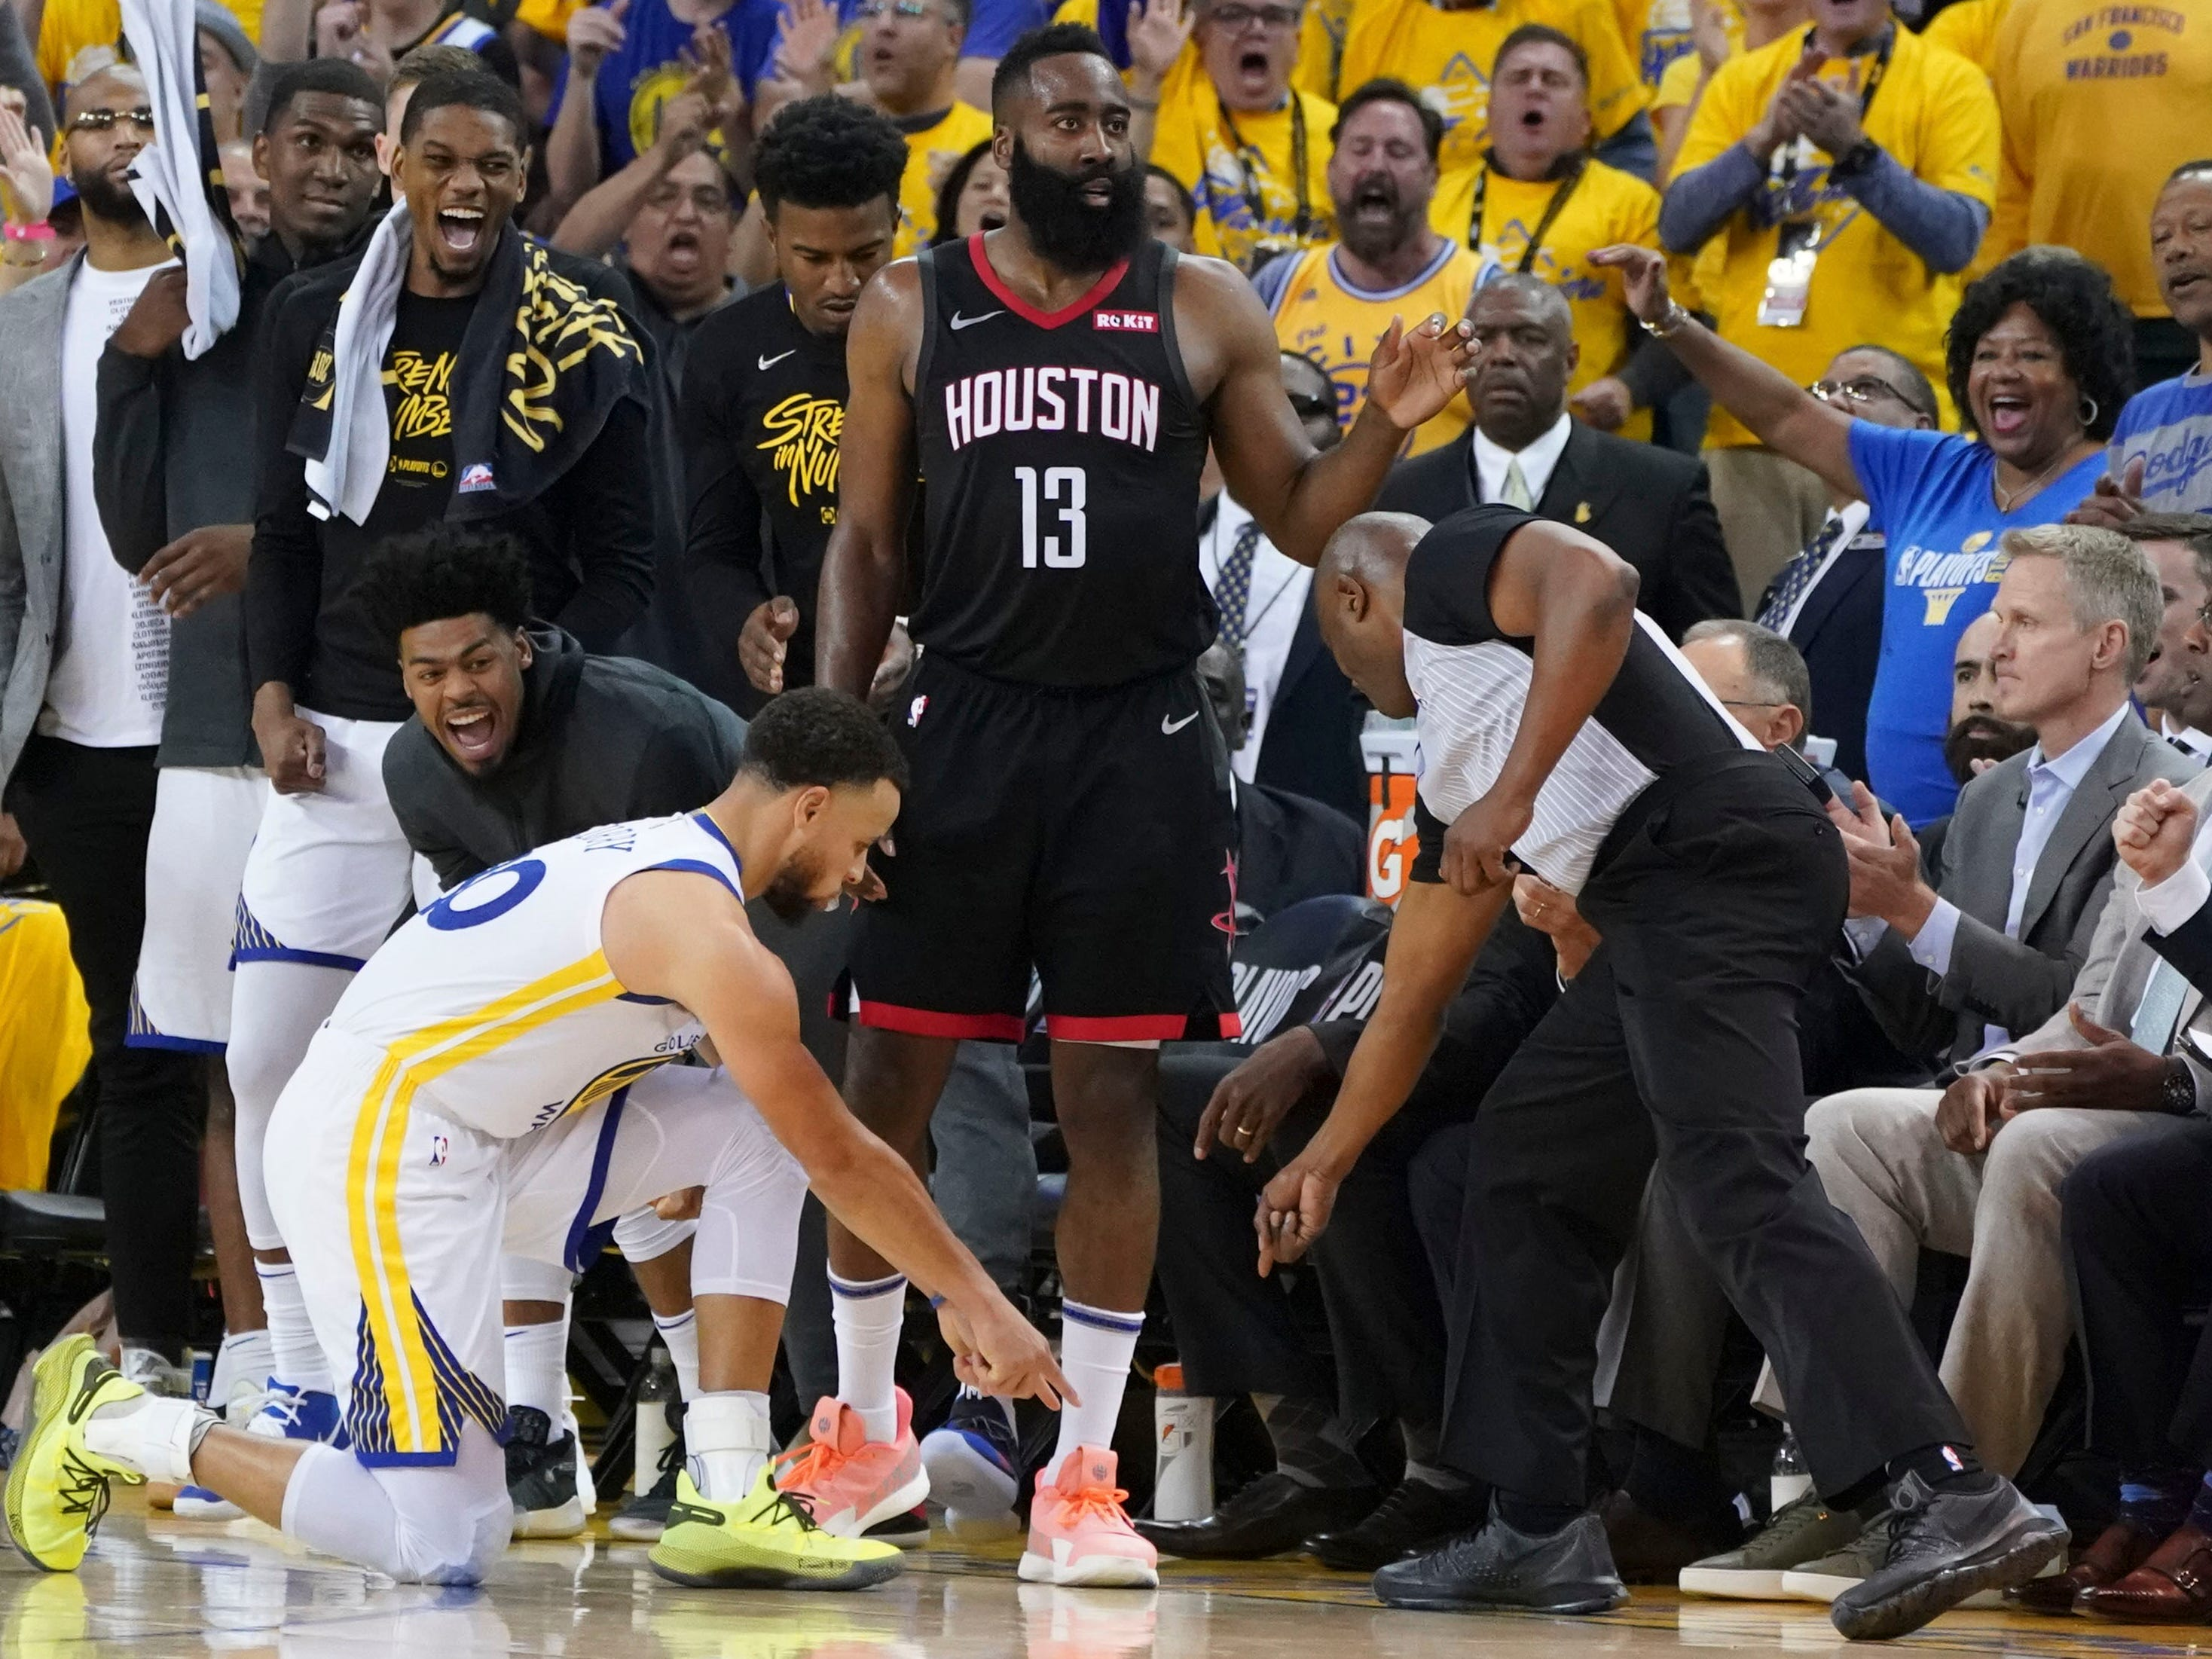 April 28: Warriors guard Steph Curry (30) helps out the ref and points to the spot where Rockets guard James Harden (13) stepped out of bounds and turned the ball over during Game 1